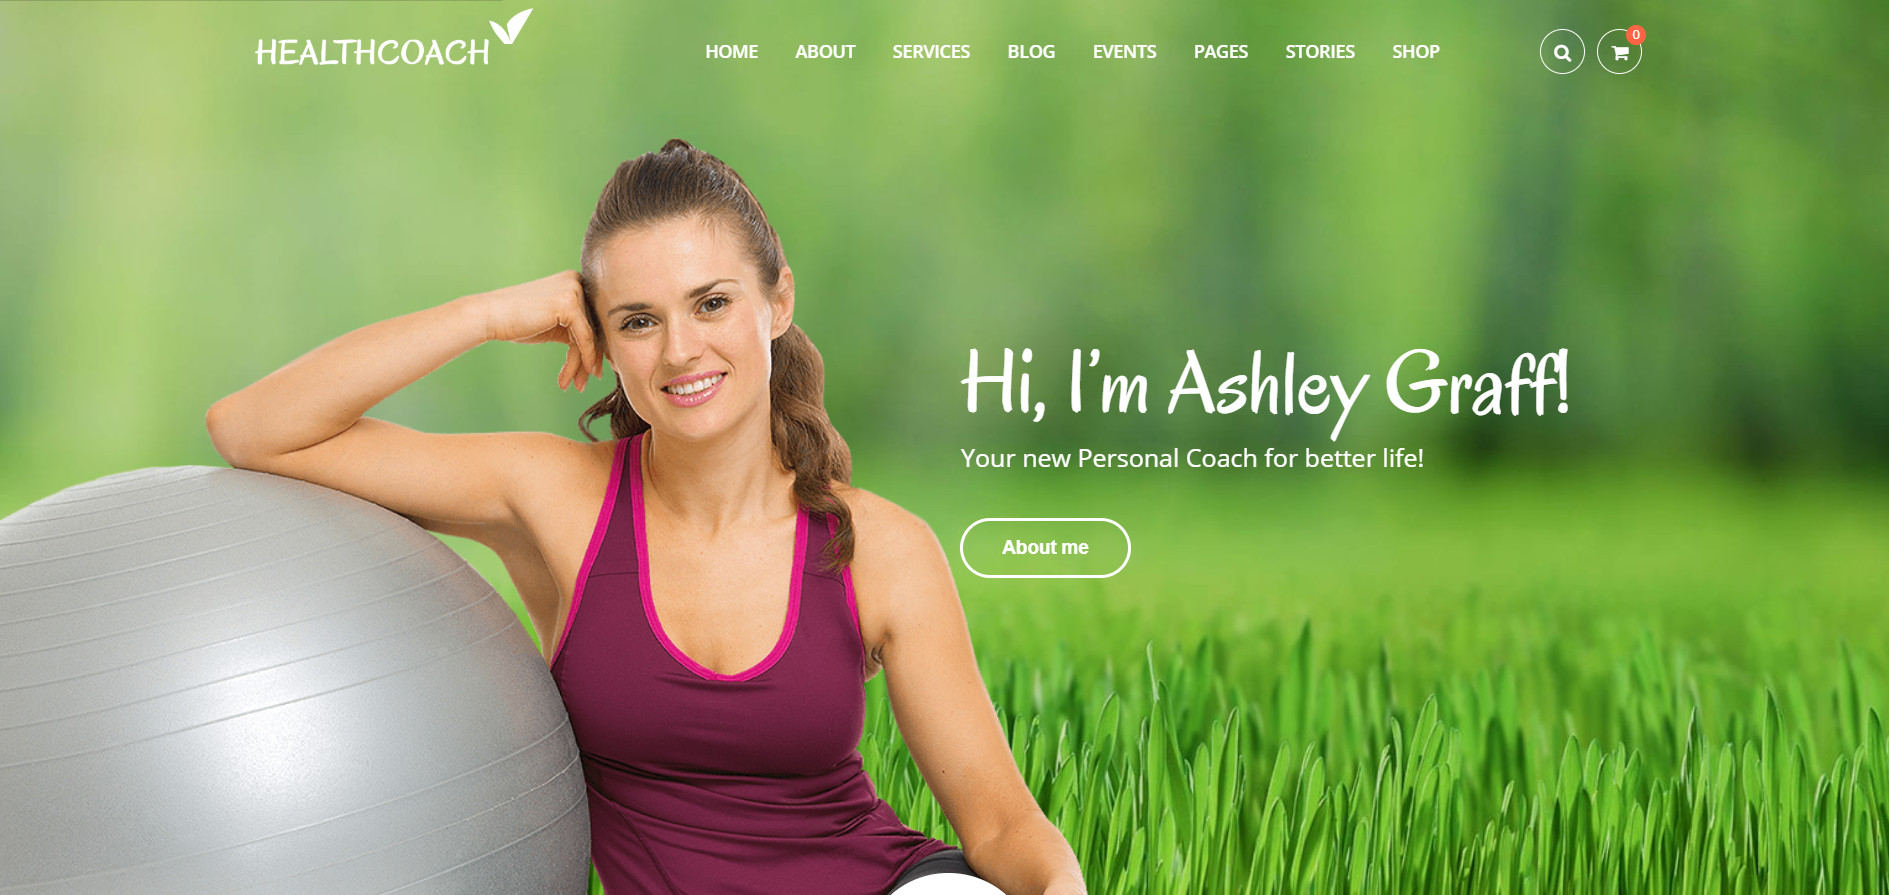 34. Health Coach - Life Coach WordPress Theme for Personal Trainer